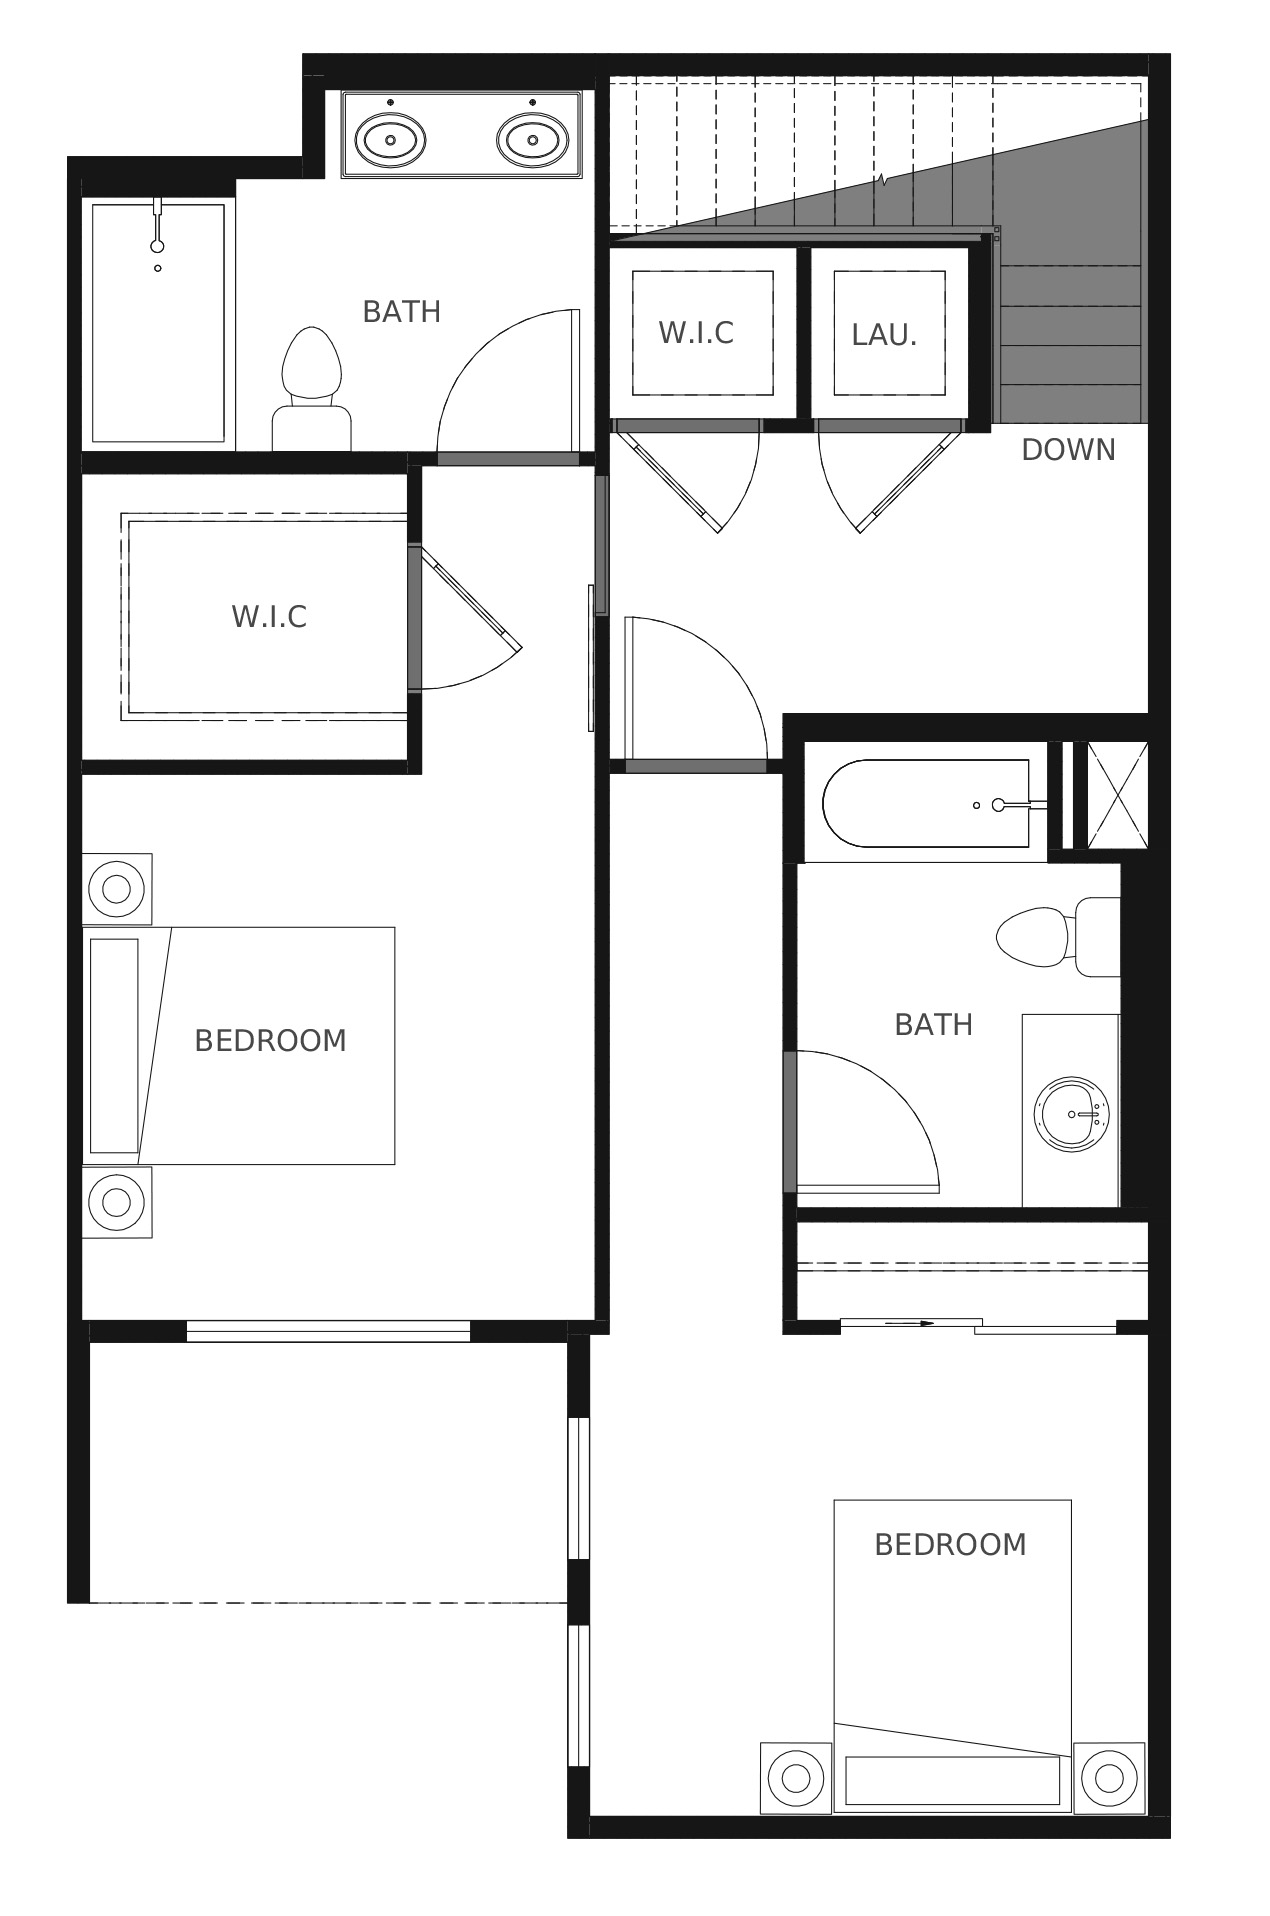 Plan C4a Second Floor - 1,602 sq. ft.